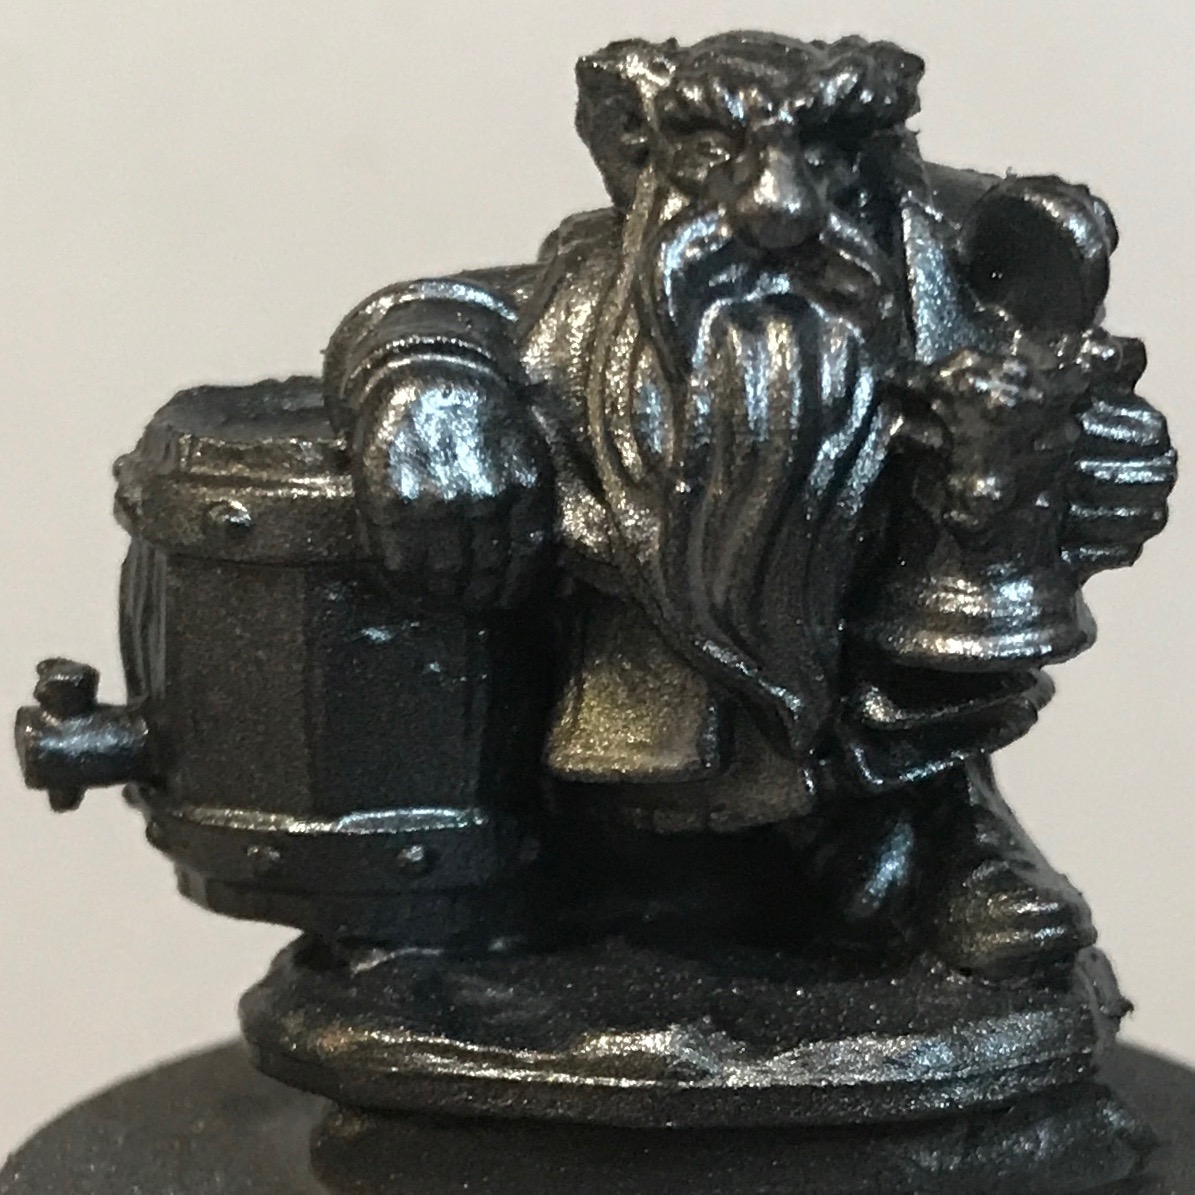 Dwarf - Plate silver at 0 degrees